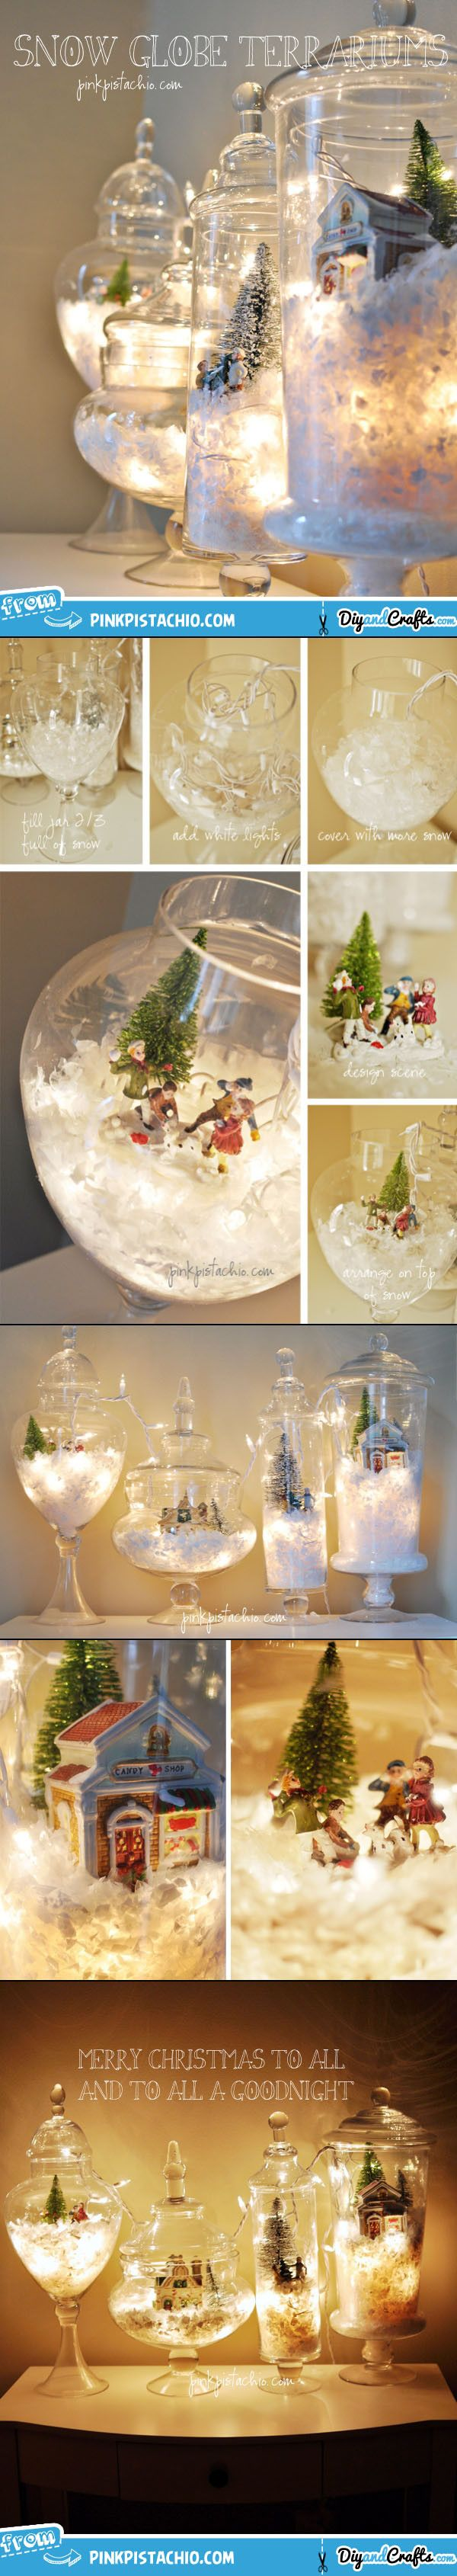 Snow Globe Terrariums- cutest idea for apothecary jars Ive seen yet! Id definitely like to try this.